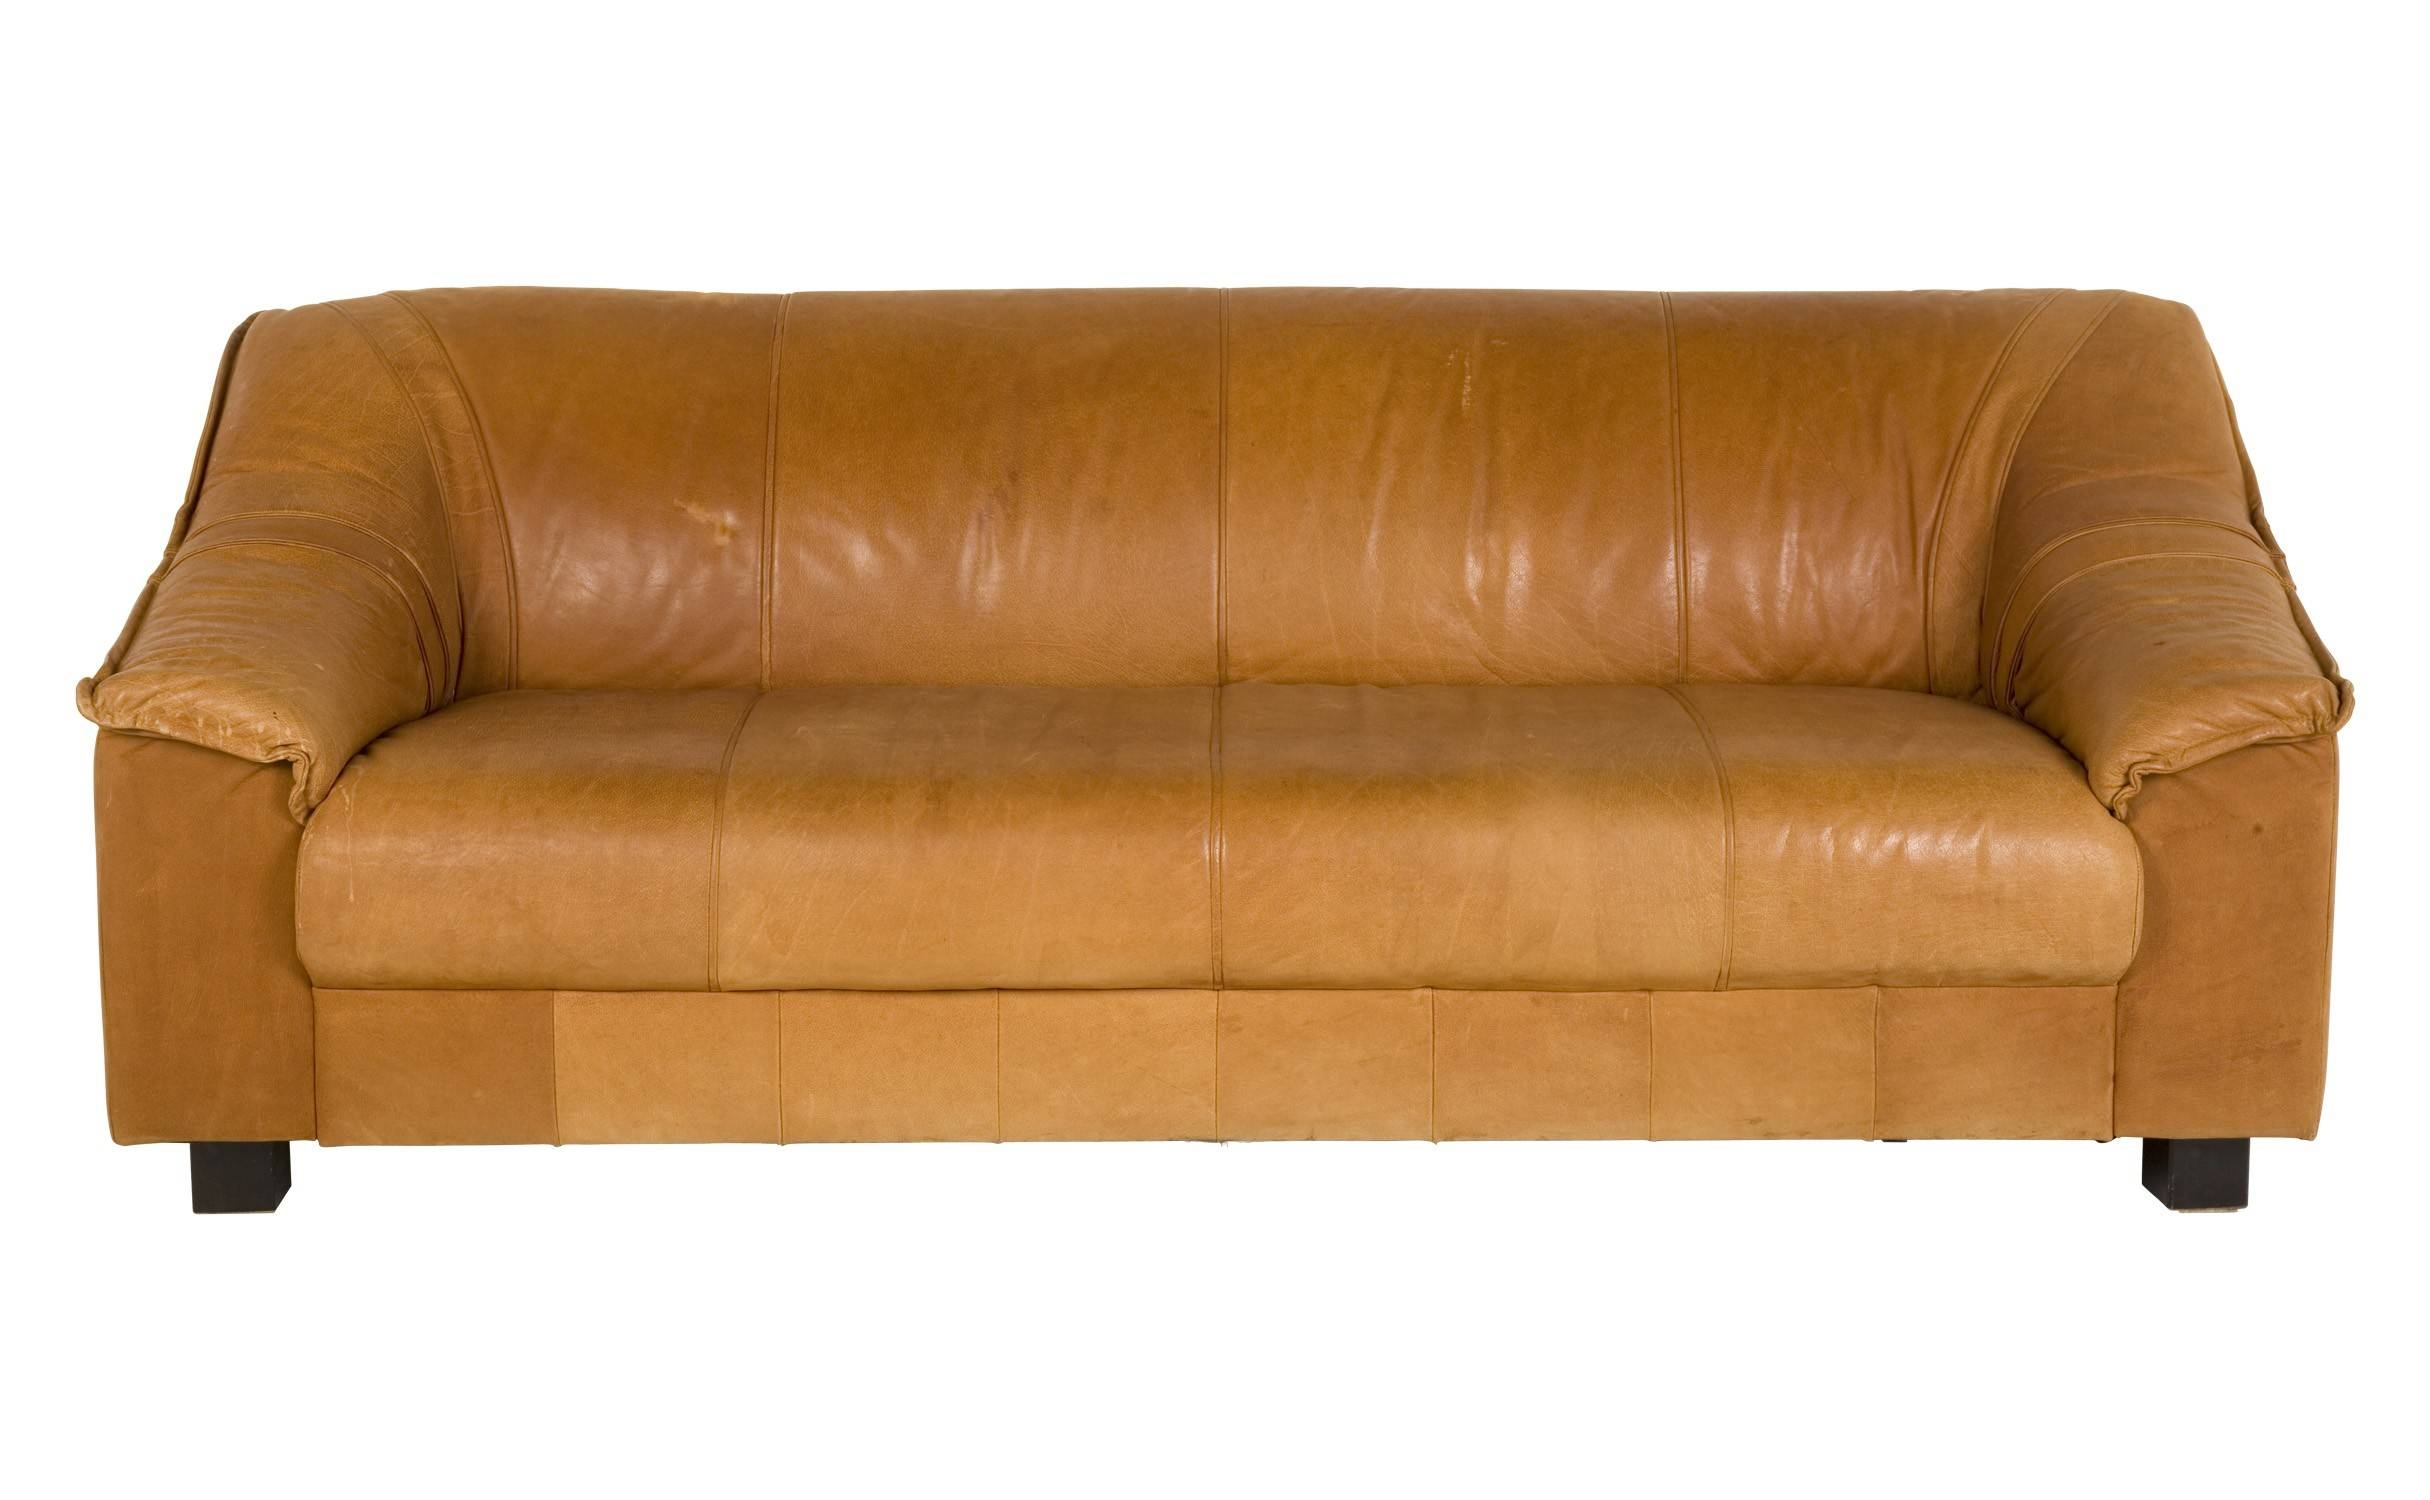 Tan Leather Sofa with regard to Light Tan Leather Sofas (Image 28 of 30)